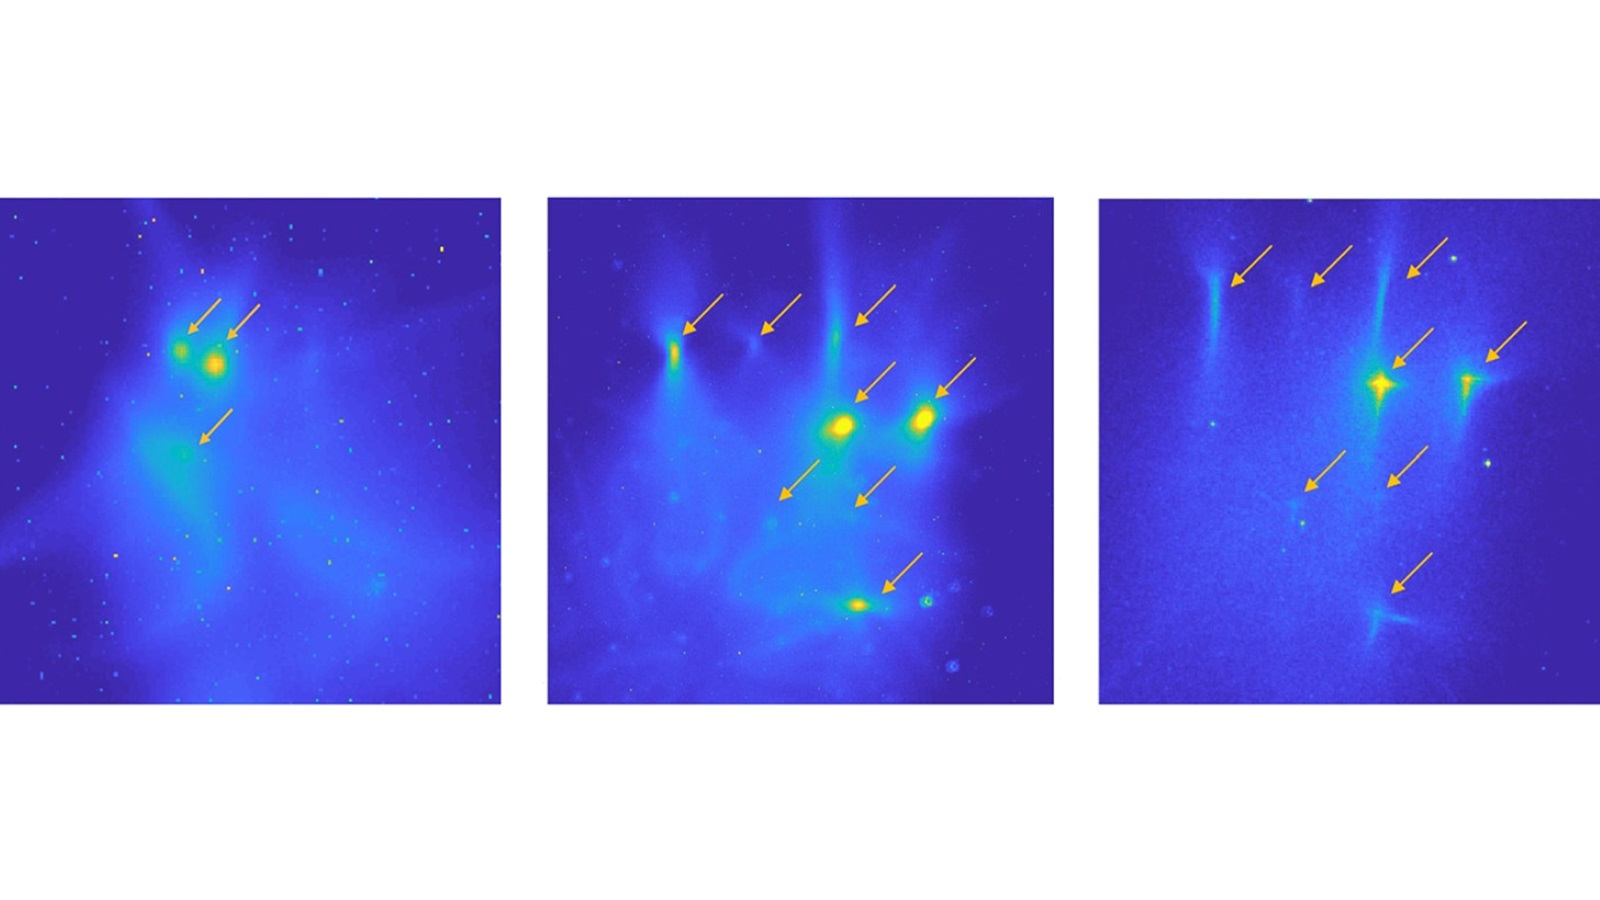 Electron beamlets as observed on YAG screens at varying distances from a cathode source. (image by Argonne National Laboratory.)